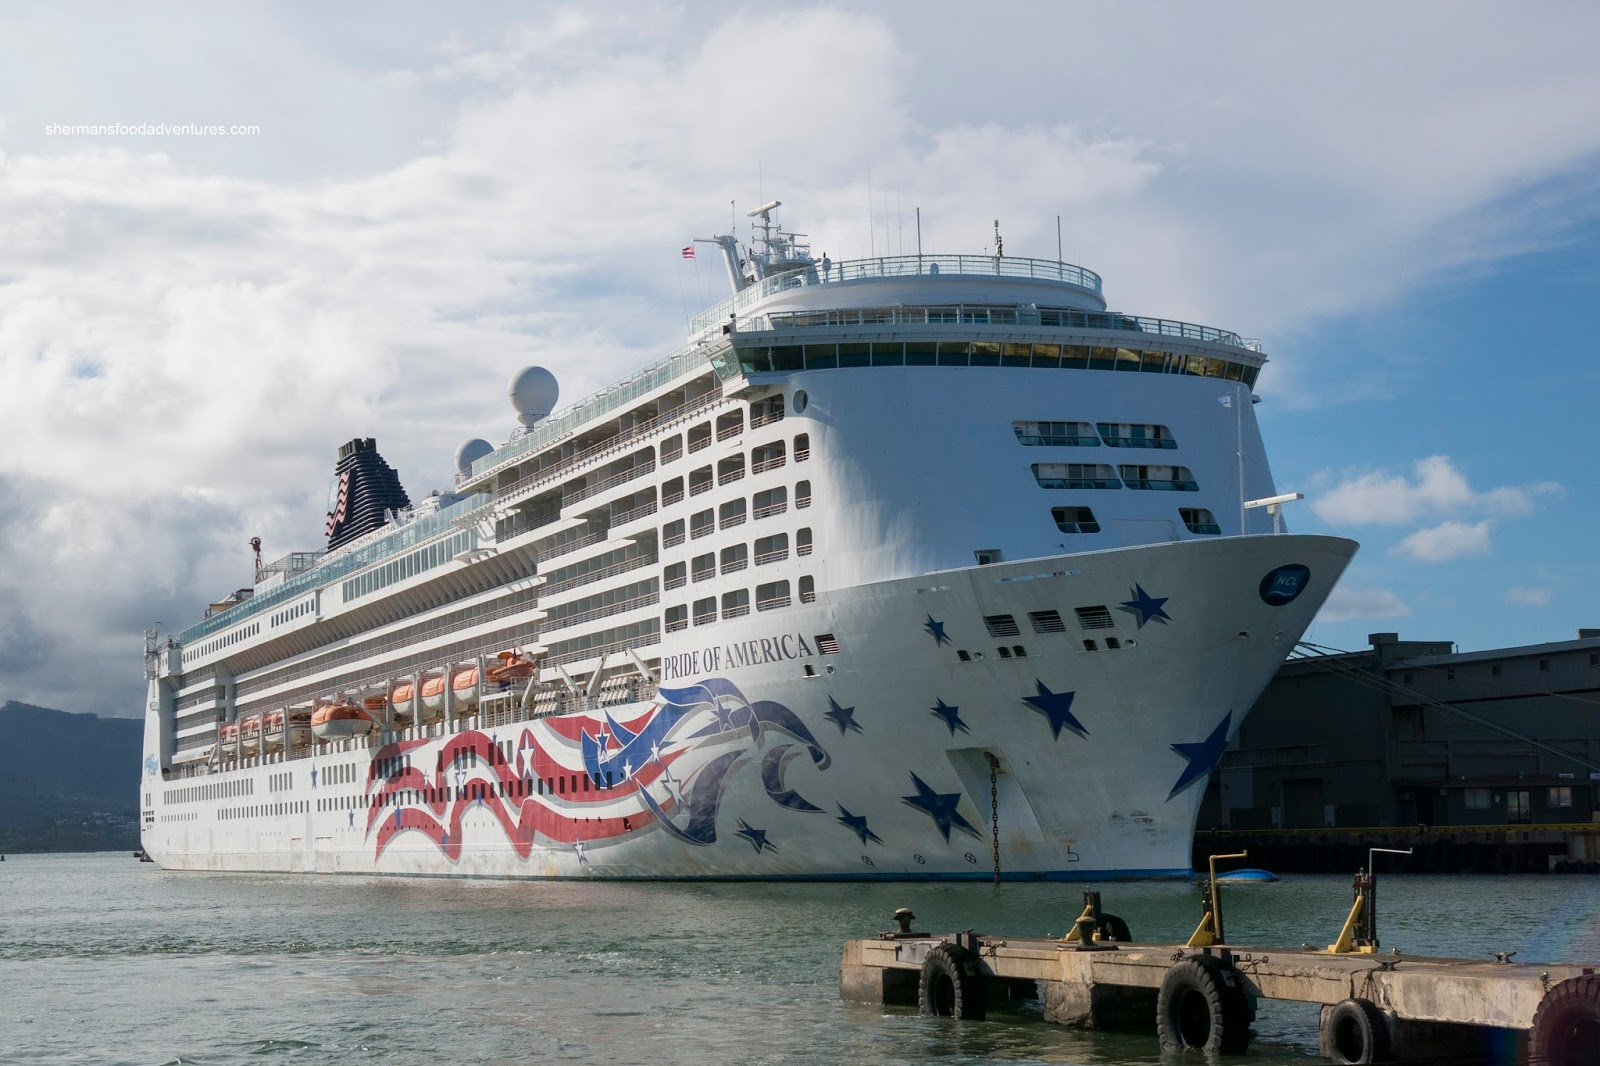 Ms pride of america norwegian cruise line - It Has Been 12 Long Years Since We Cruised With Ncl During That Time I Ve Changed Careers Had 2 Kids Been Through 3 Cars And Have Started A Blog